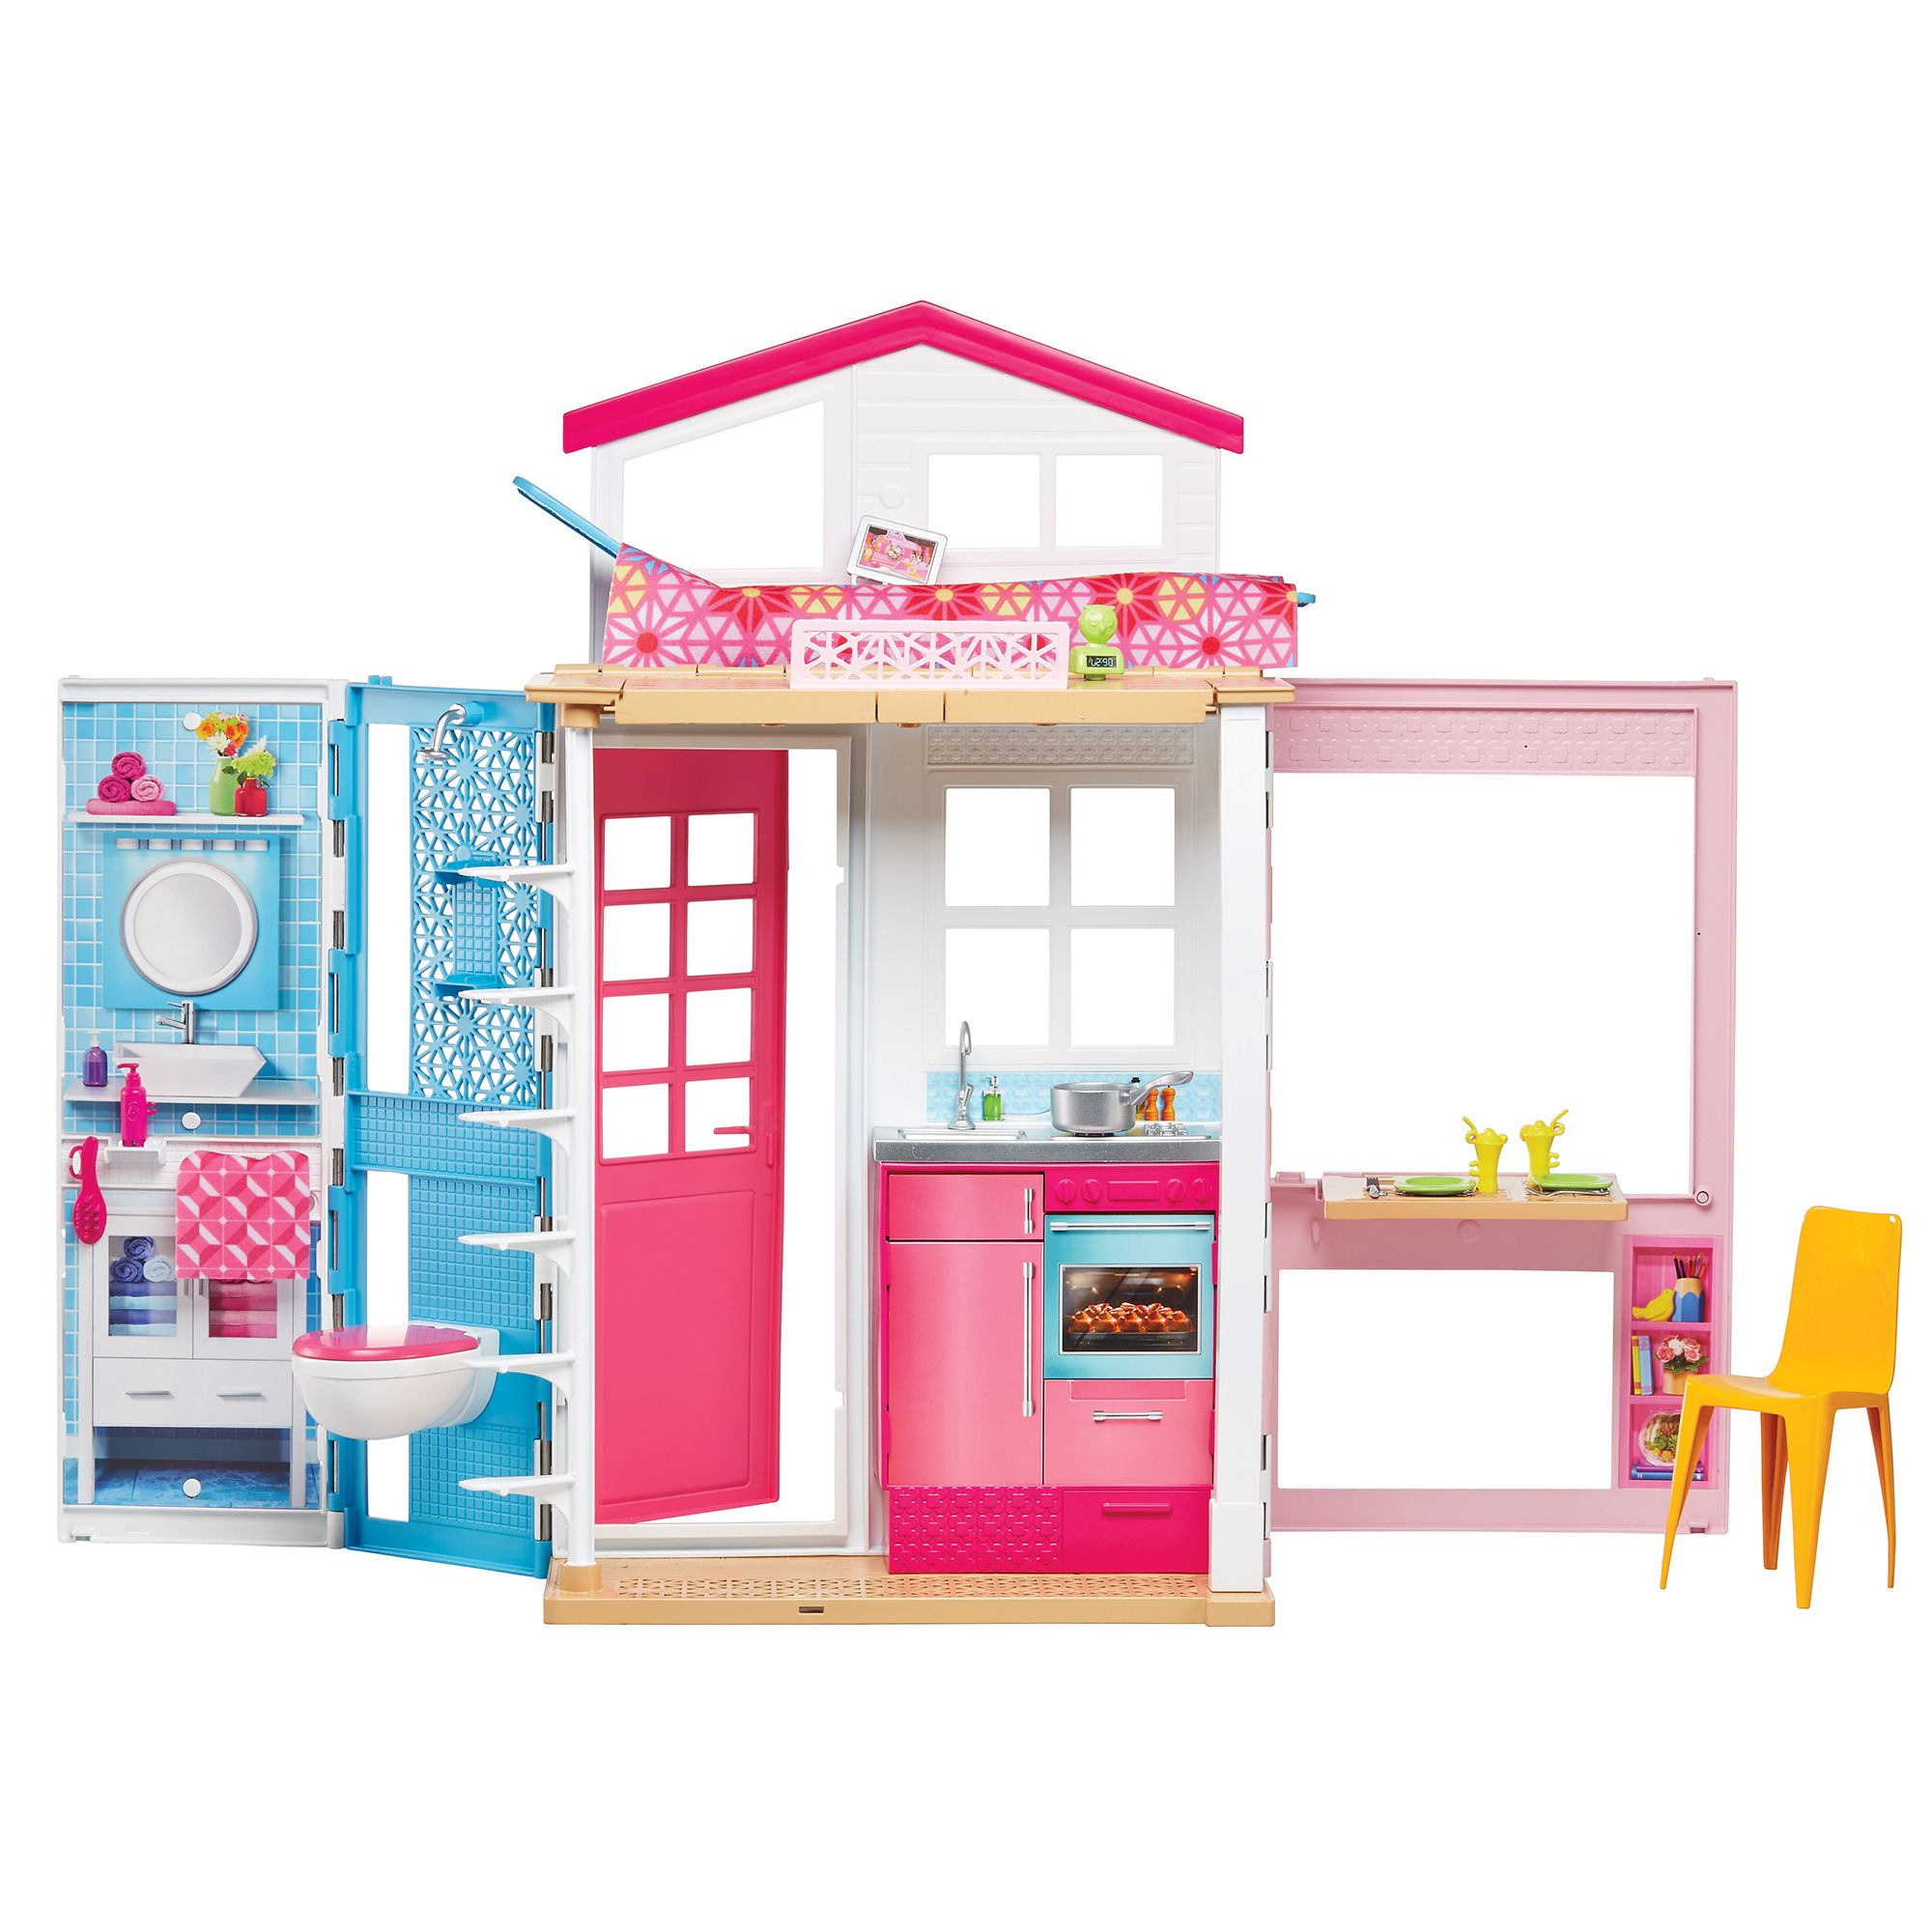 Barbie 2Story House & Doll